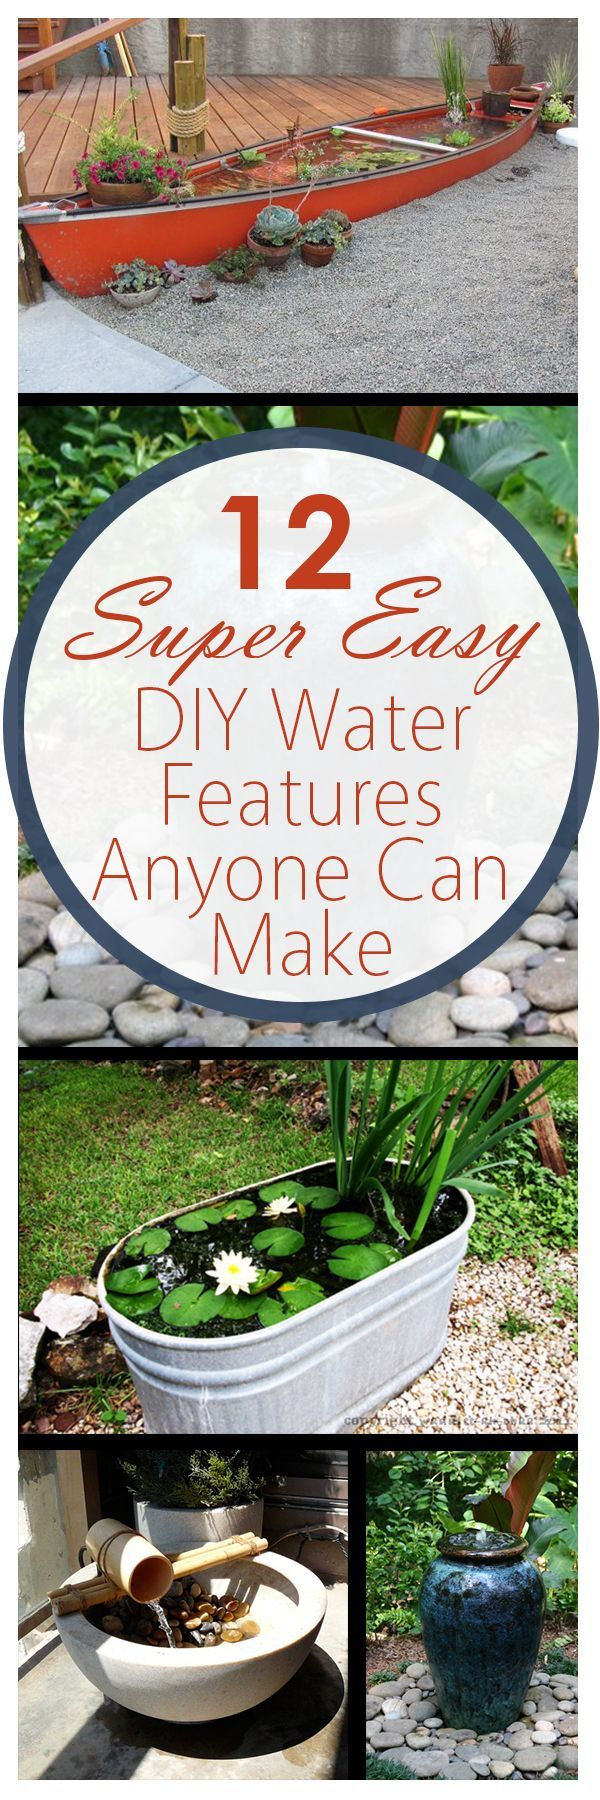 12 Super Easy Diy Water Features Anyone Can Make Diy 400 x 300